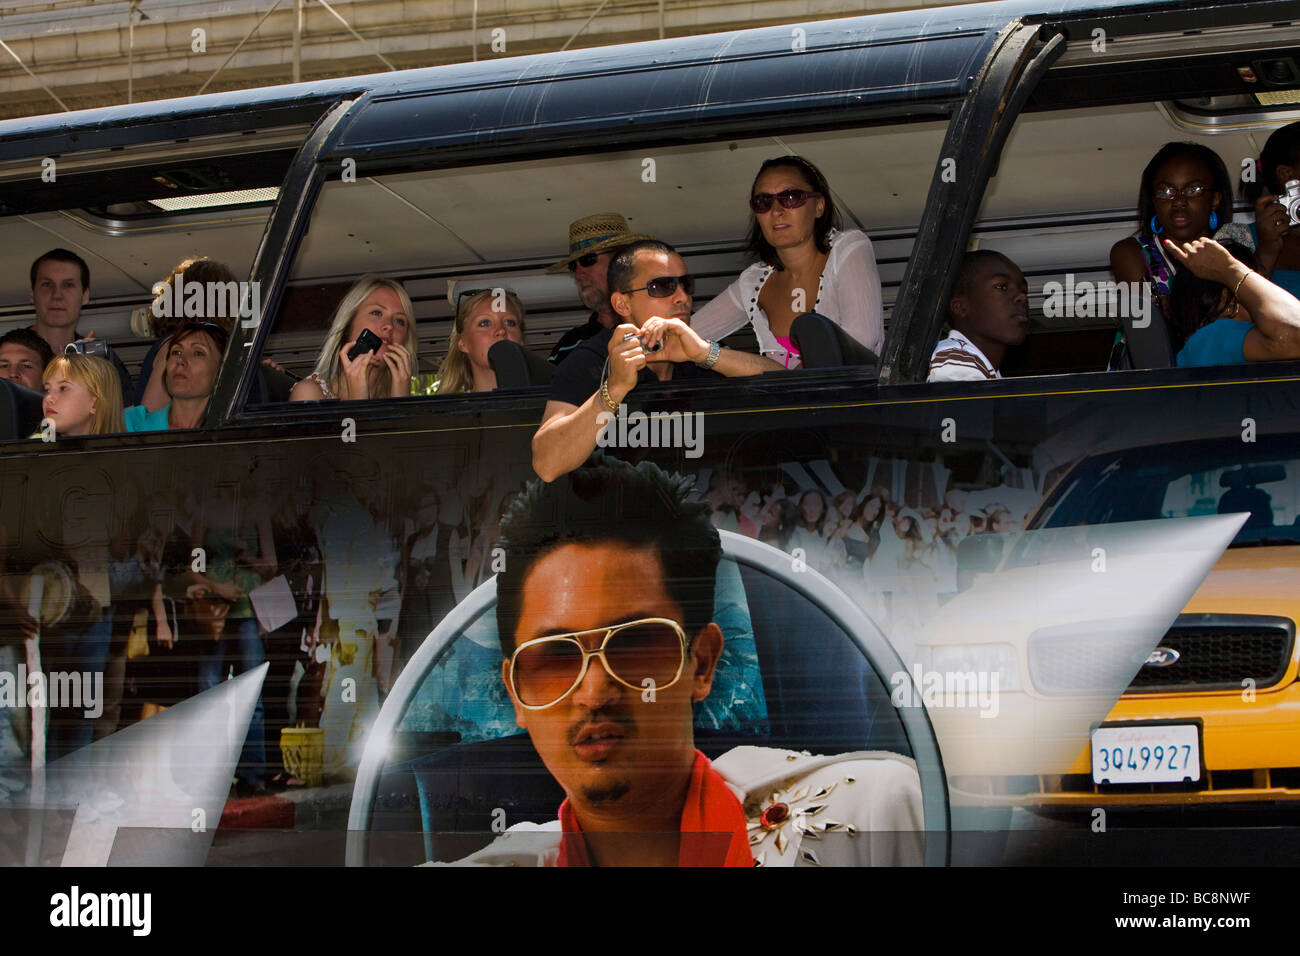 Tourists on a bus sightseeing Hollywood Blvd Hollywood Los Angeles County California United States of America - Stock Image